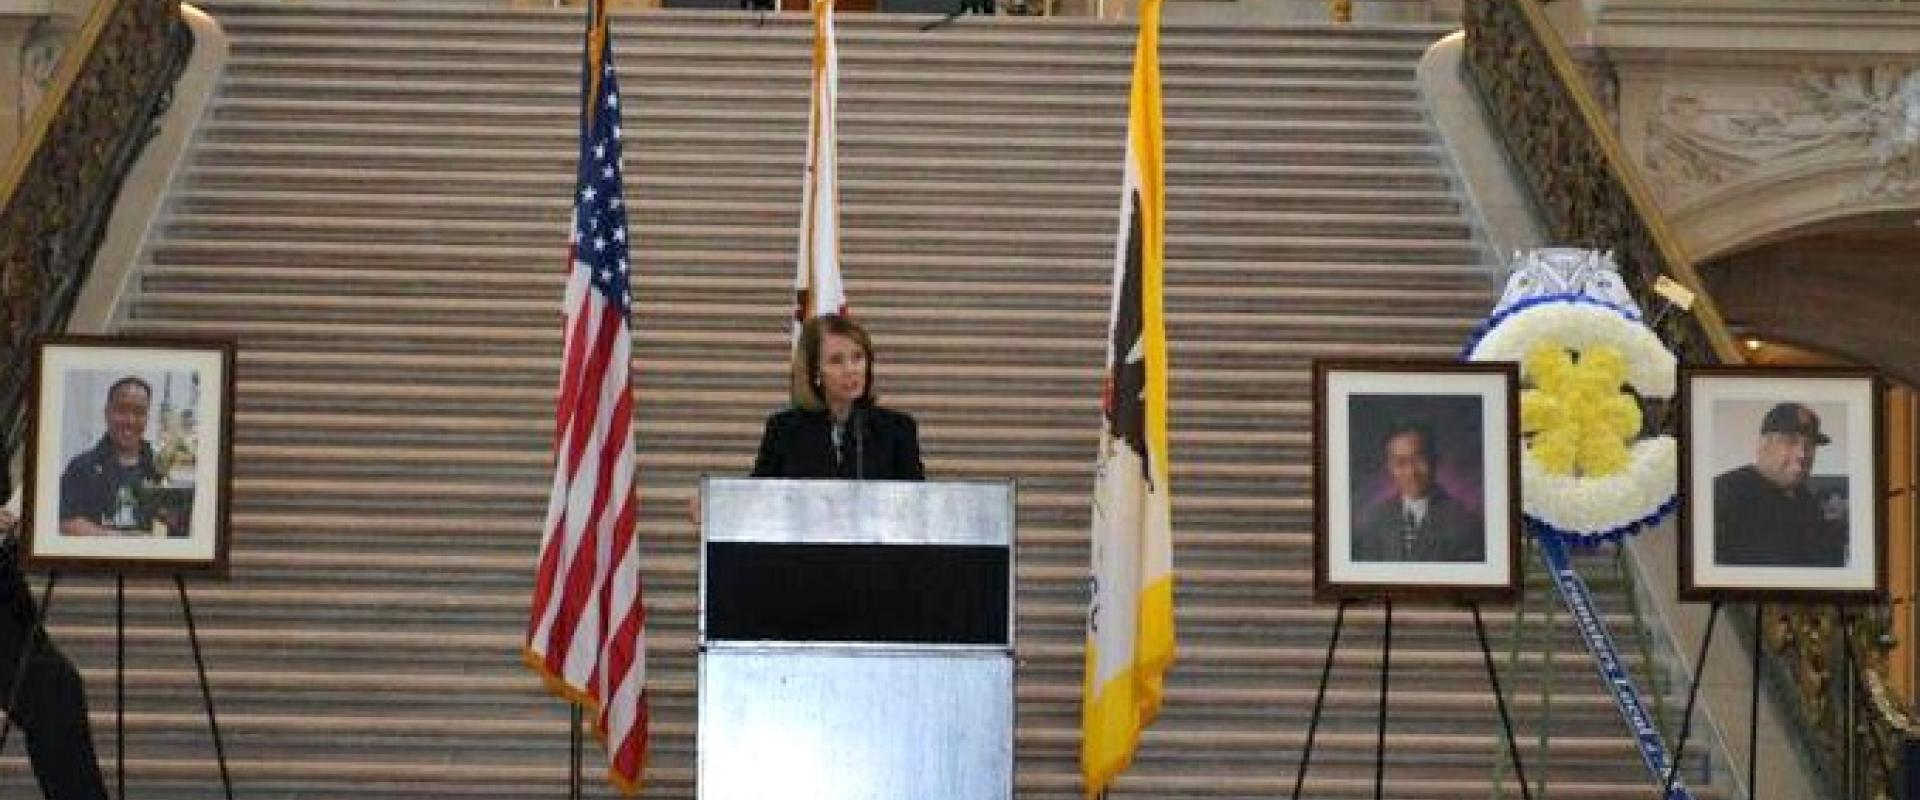 Congresswoman Pelosi pays tribute to the slain UPS drivers and those wounded at a memorial service held by the Teamster's at City Hall; honoring the lives Wayne Chan, Michael Lefiti and Benson Louie, killed during an act of gun violence.